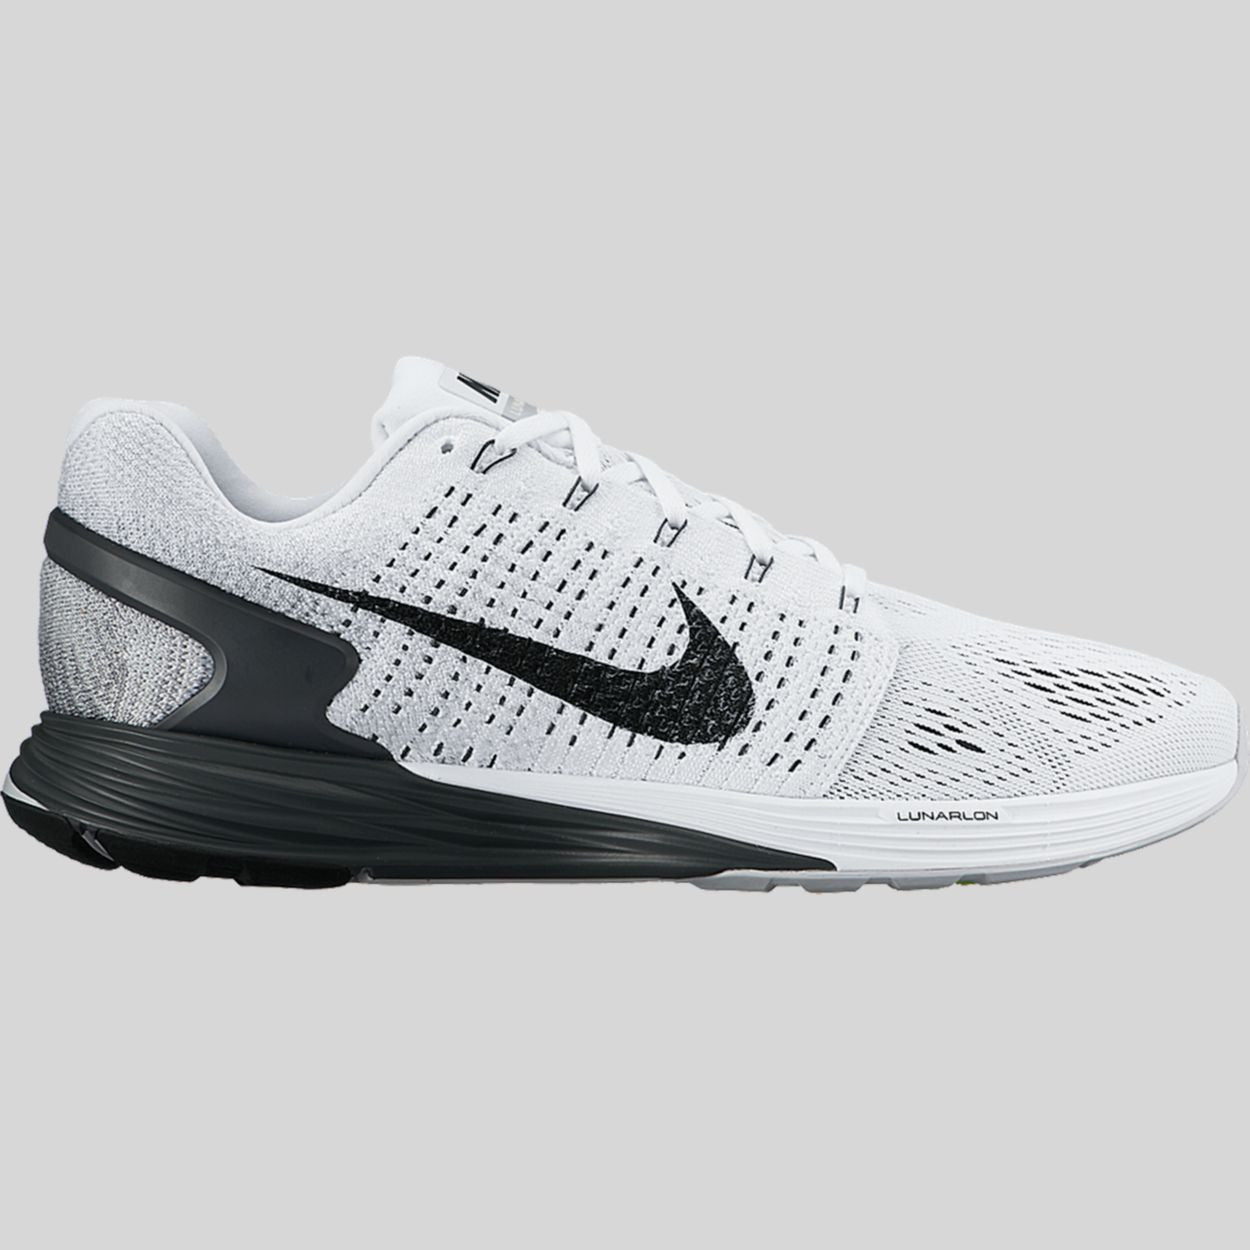 Nike Lunarglide 7 White Anthracite Cool Grey (747355-100)